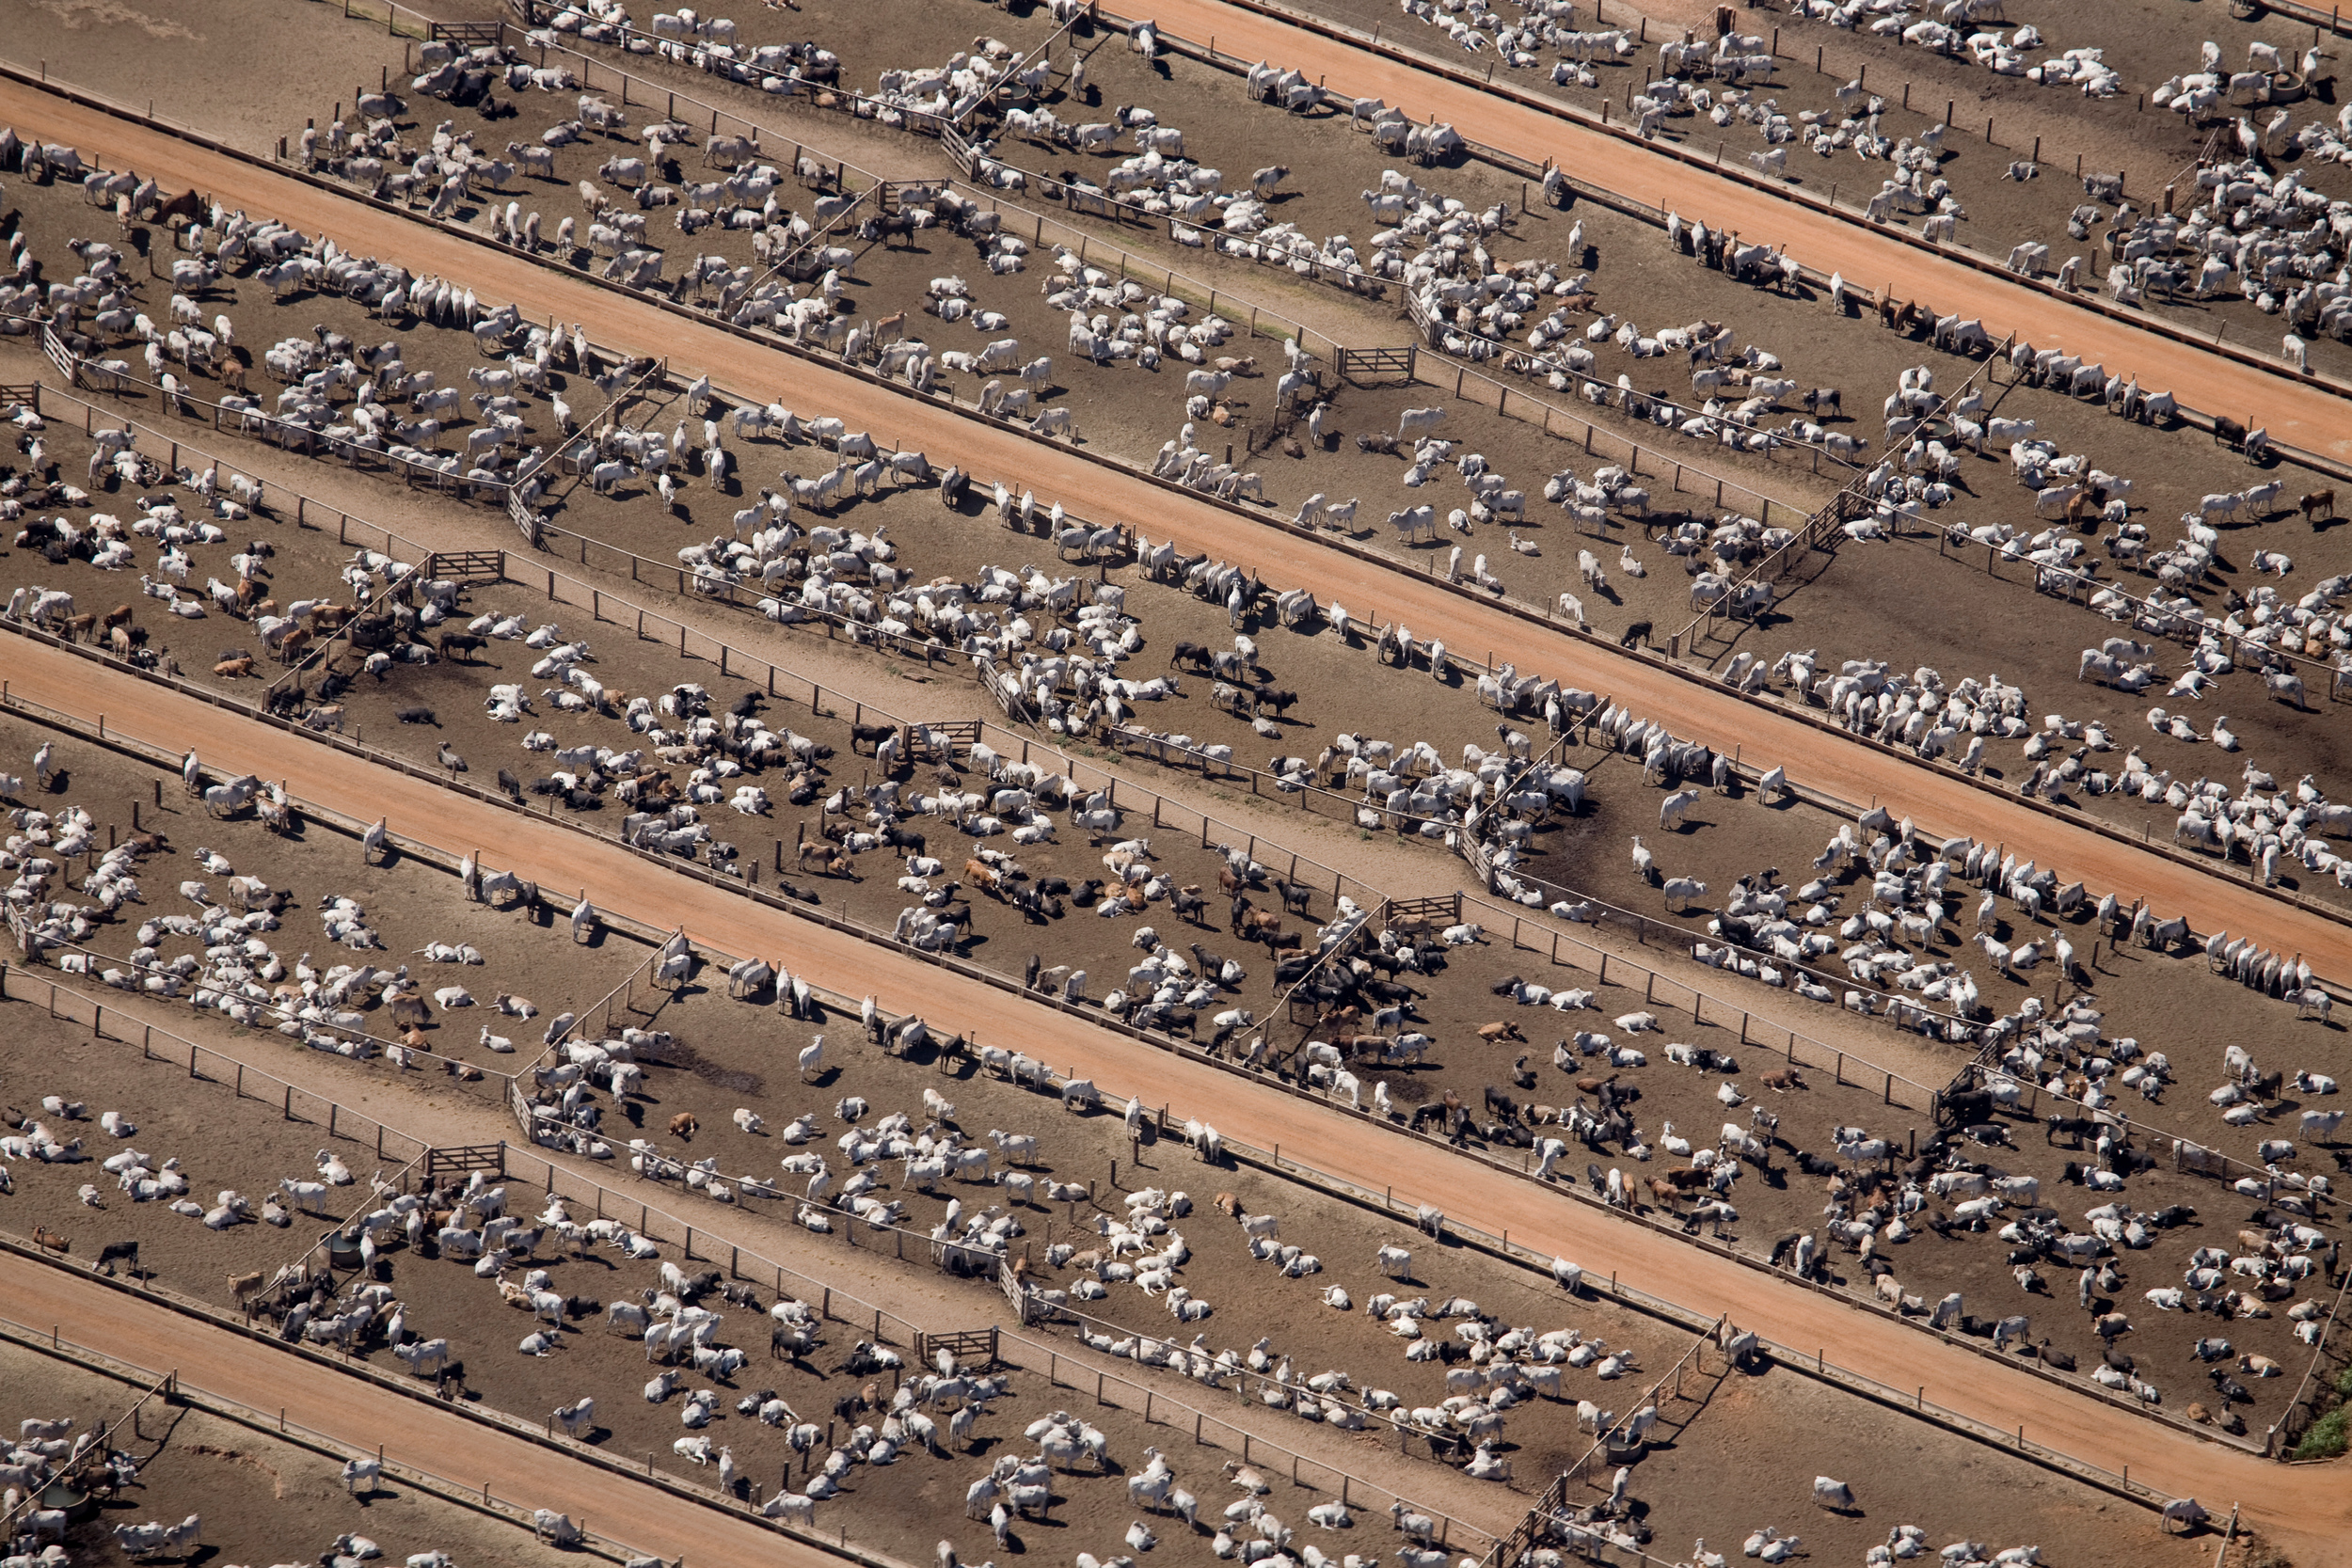 aerial view of cattle farm